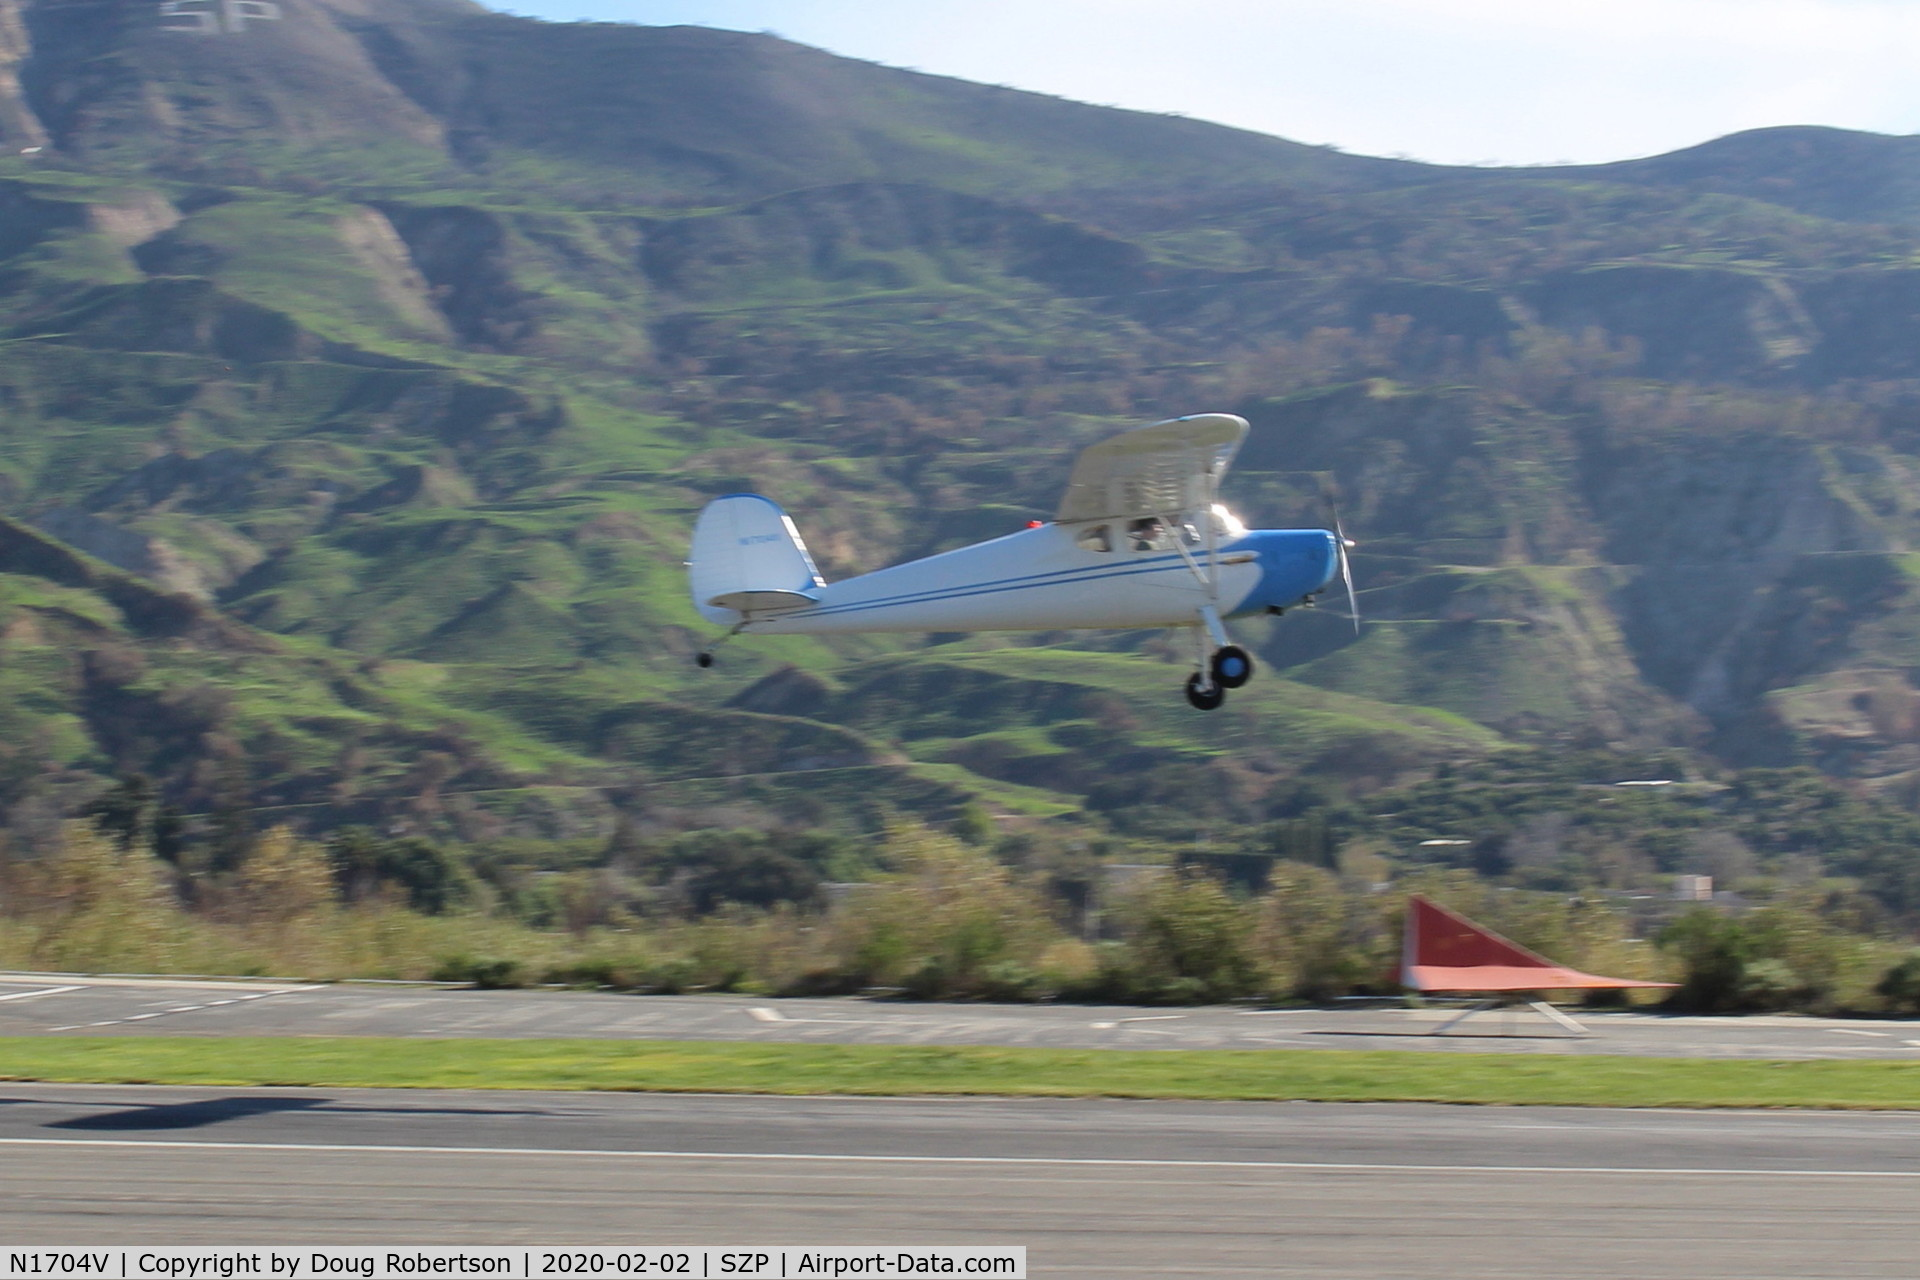 N1704V, Cessna 140 C/N 13889, 1948 Cessna 140, Continental C-85-12 85 Hp, another takeoff climb Rwy 22